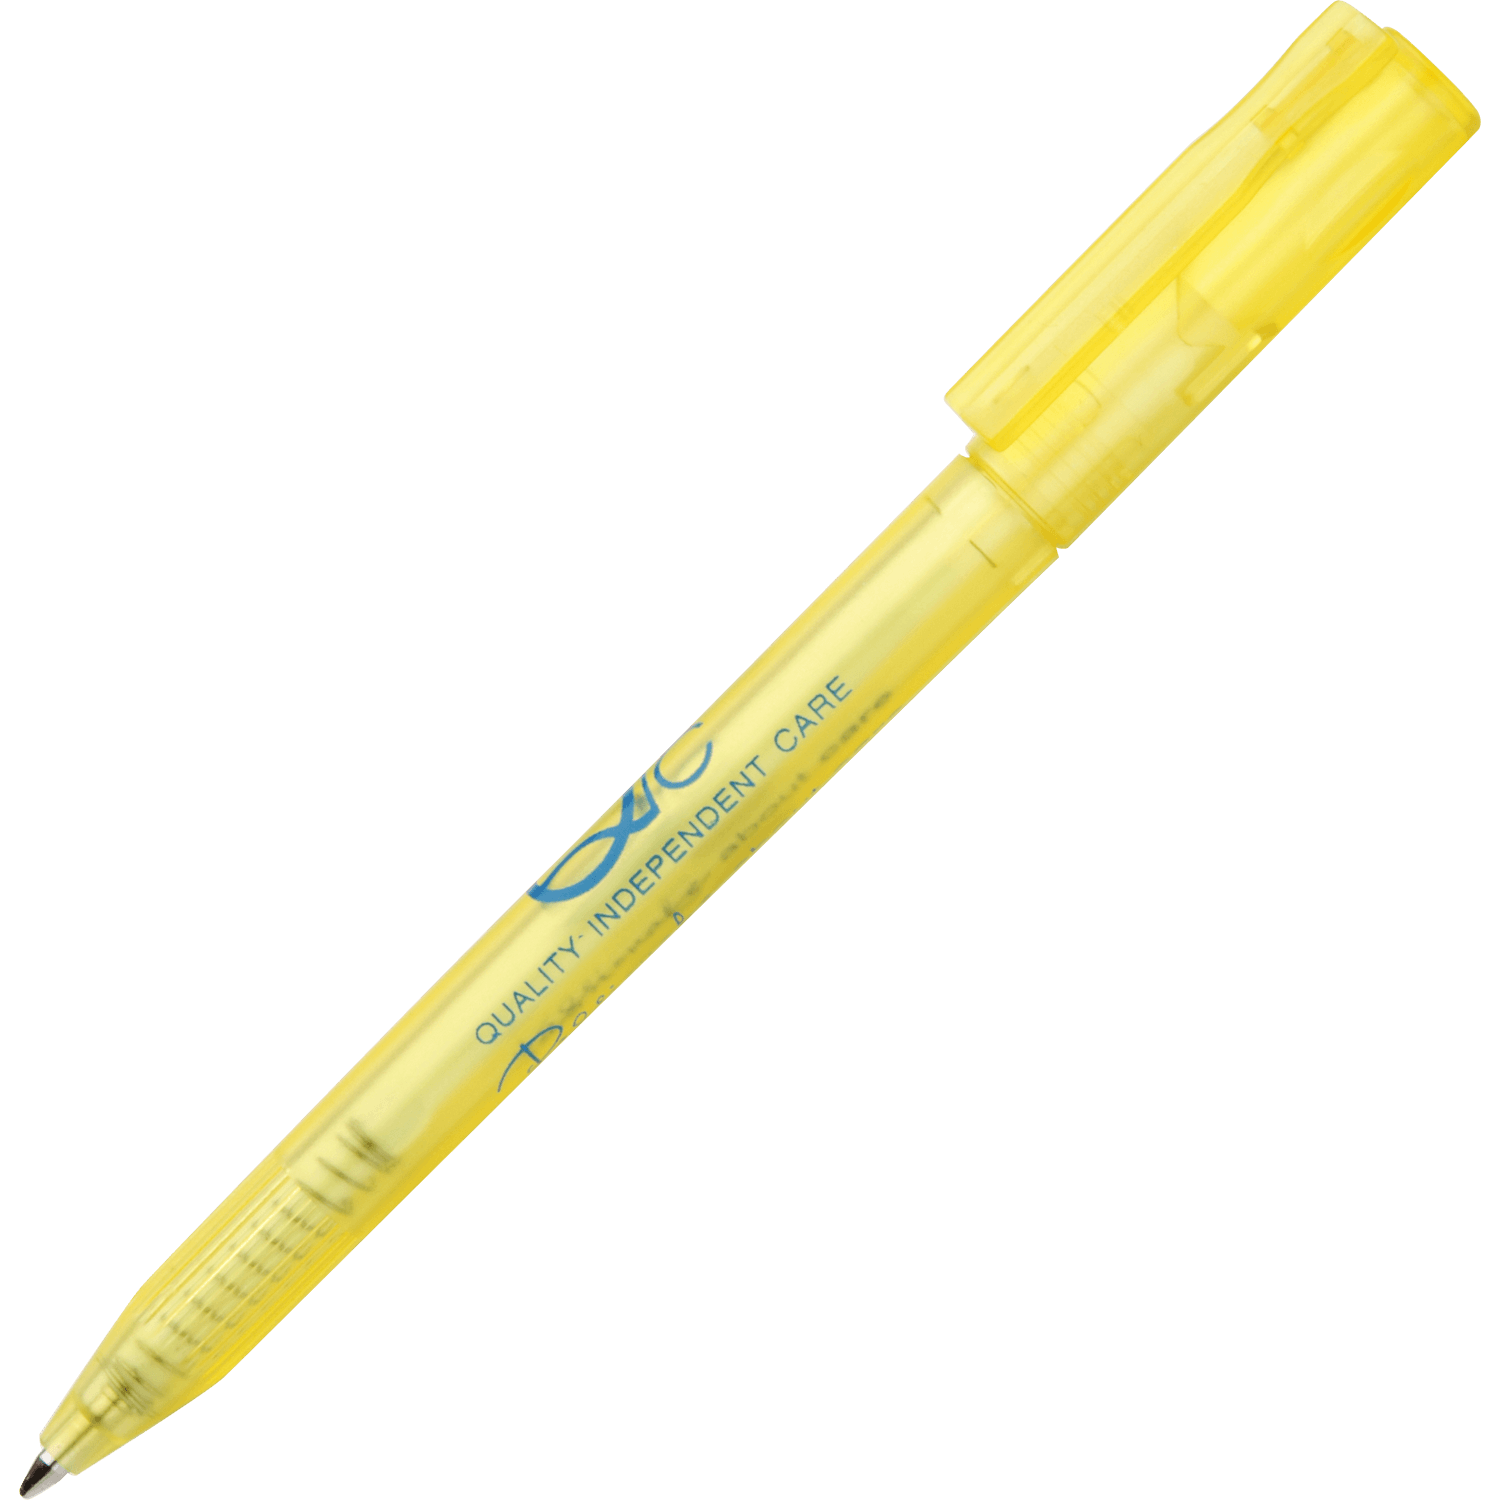 Supavalue Pen